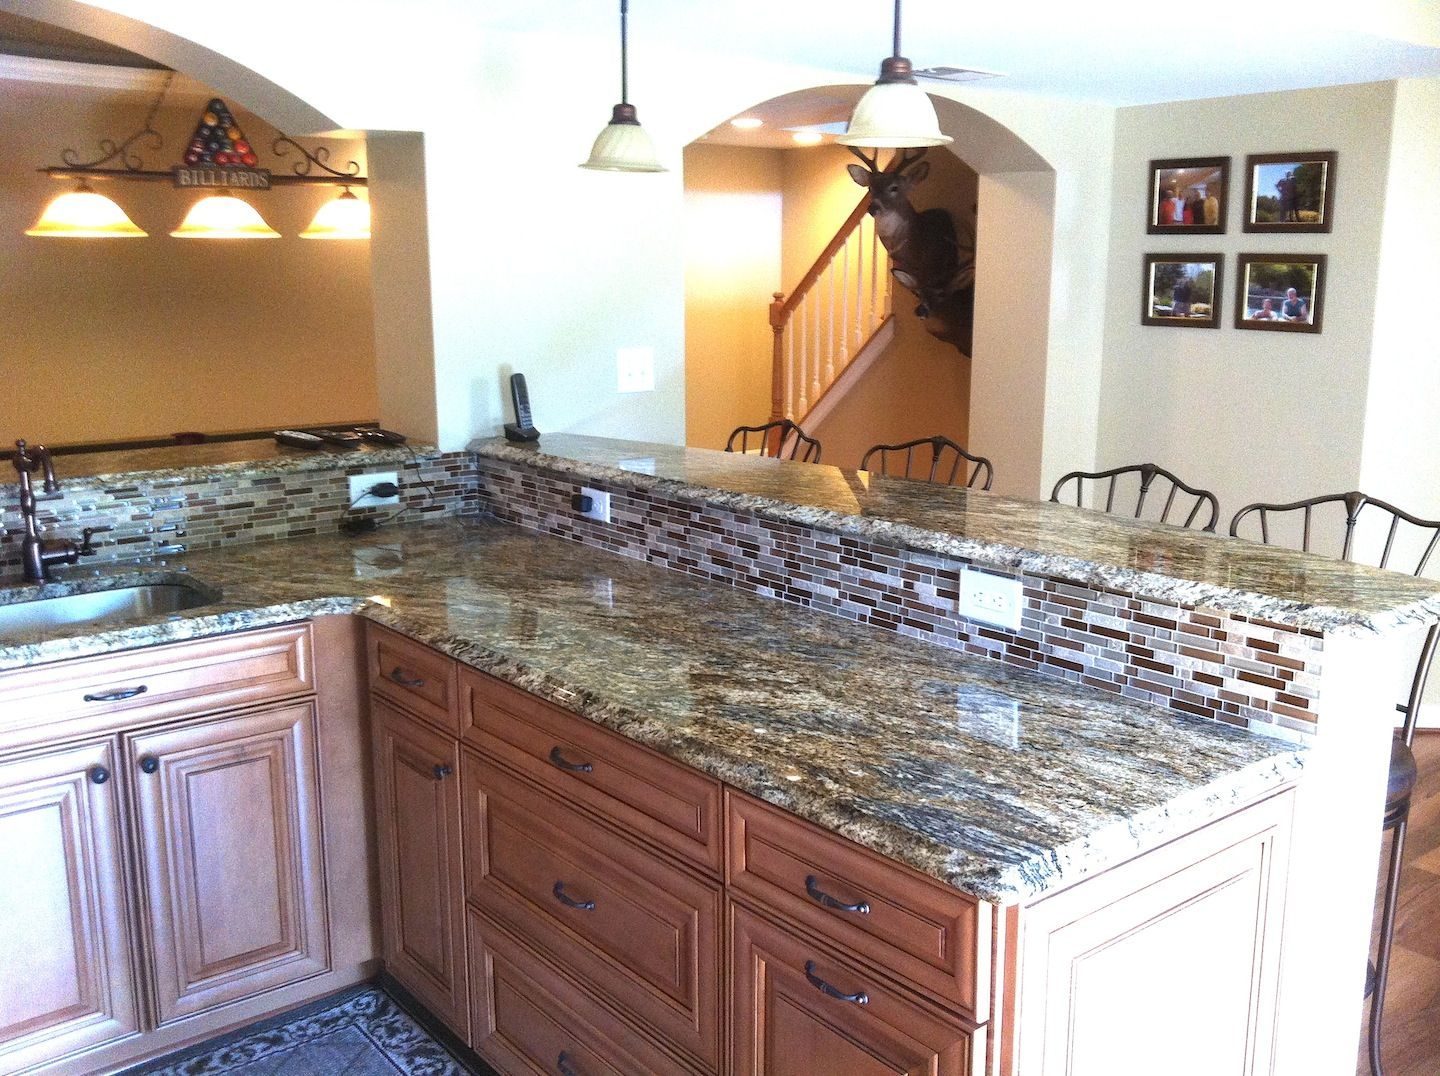 kitchenette (2/2) of a full basement remodel in owings mills, md